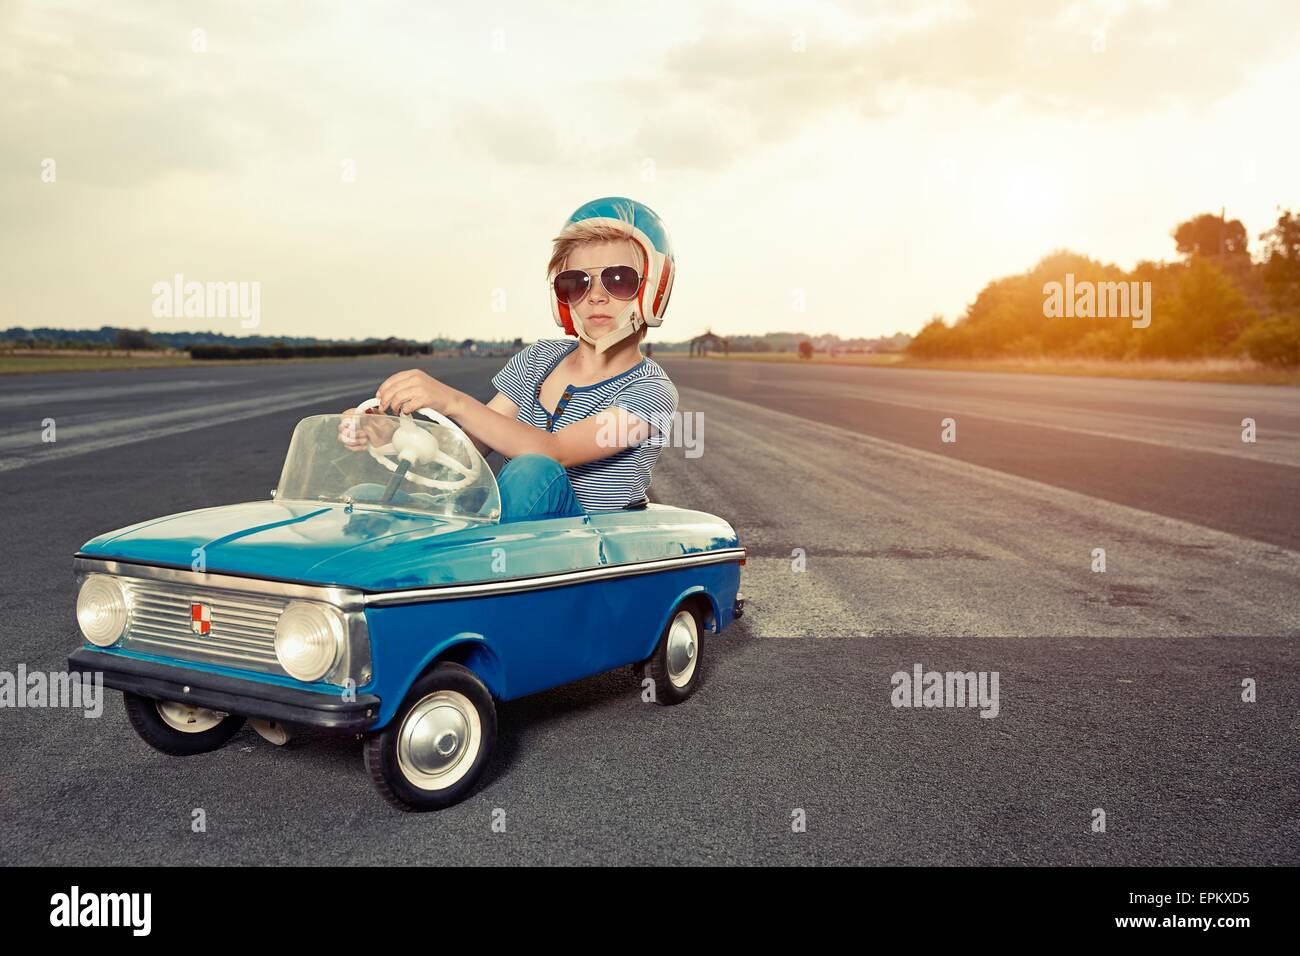 Boy with sunglasses in pedal car on race track - Stock Image